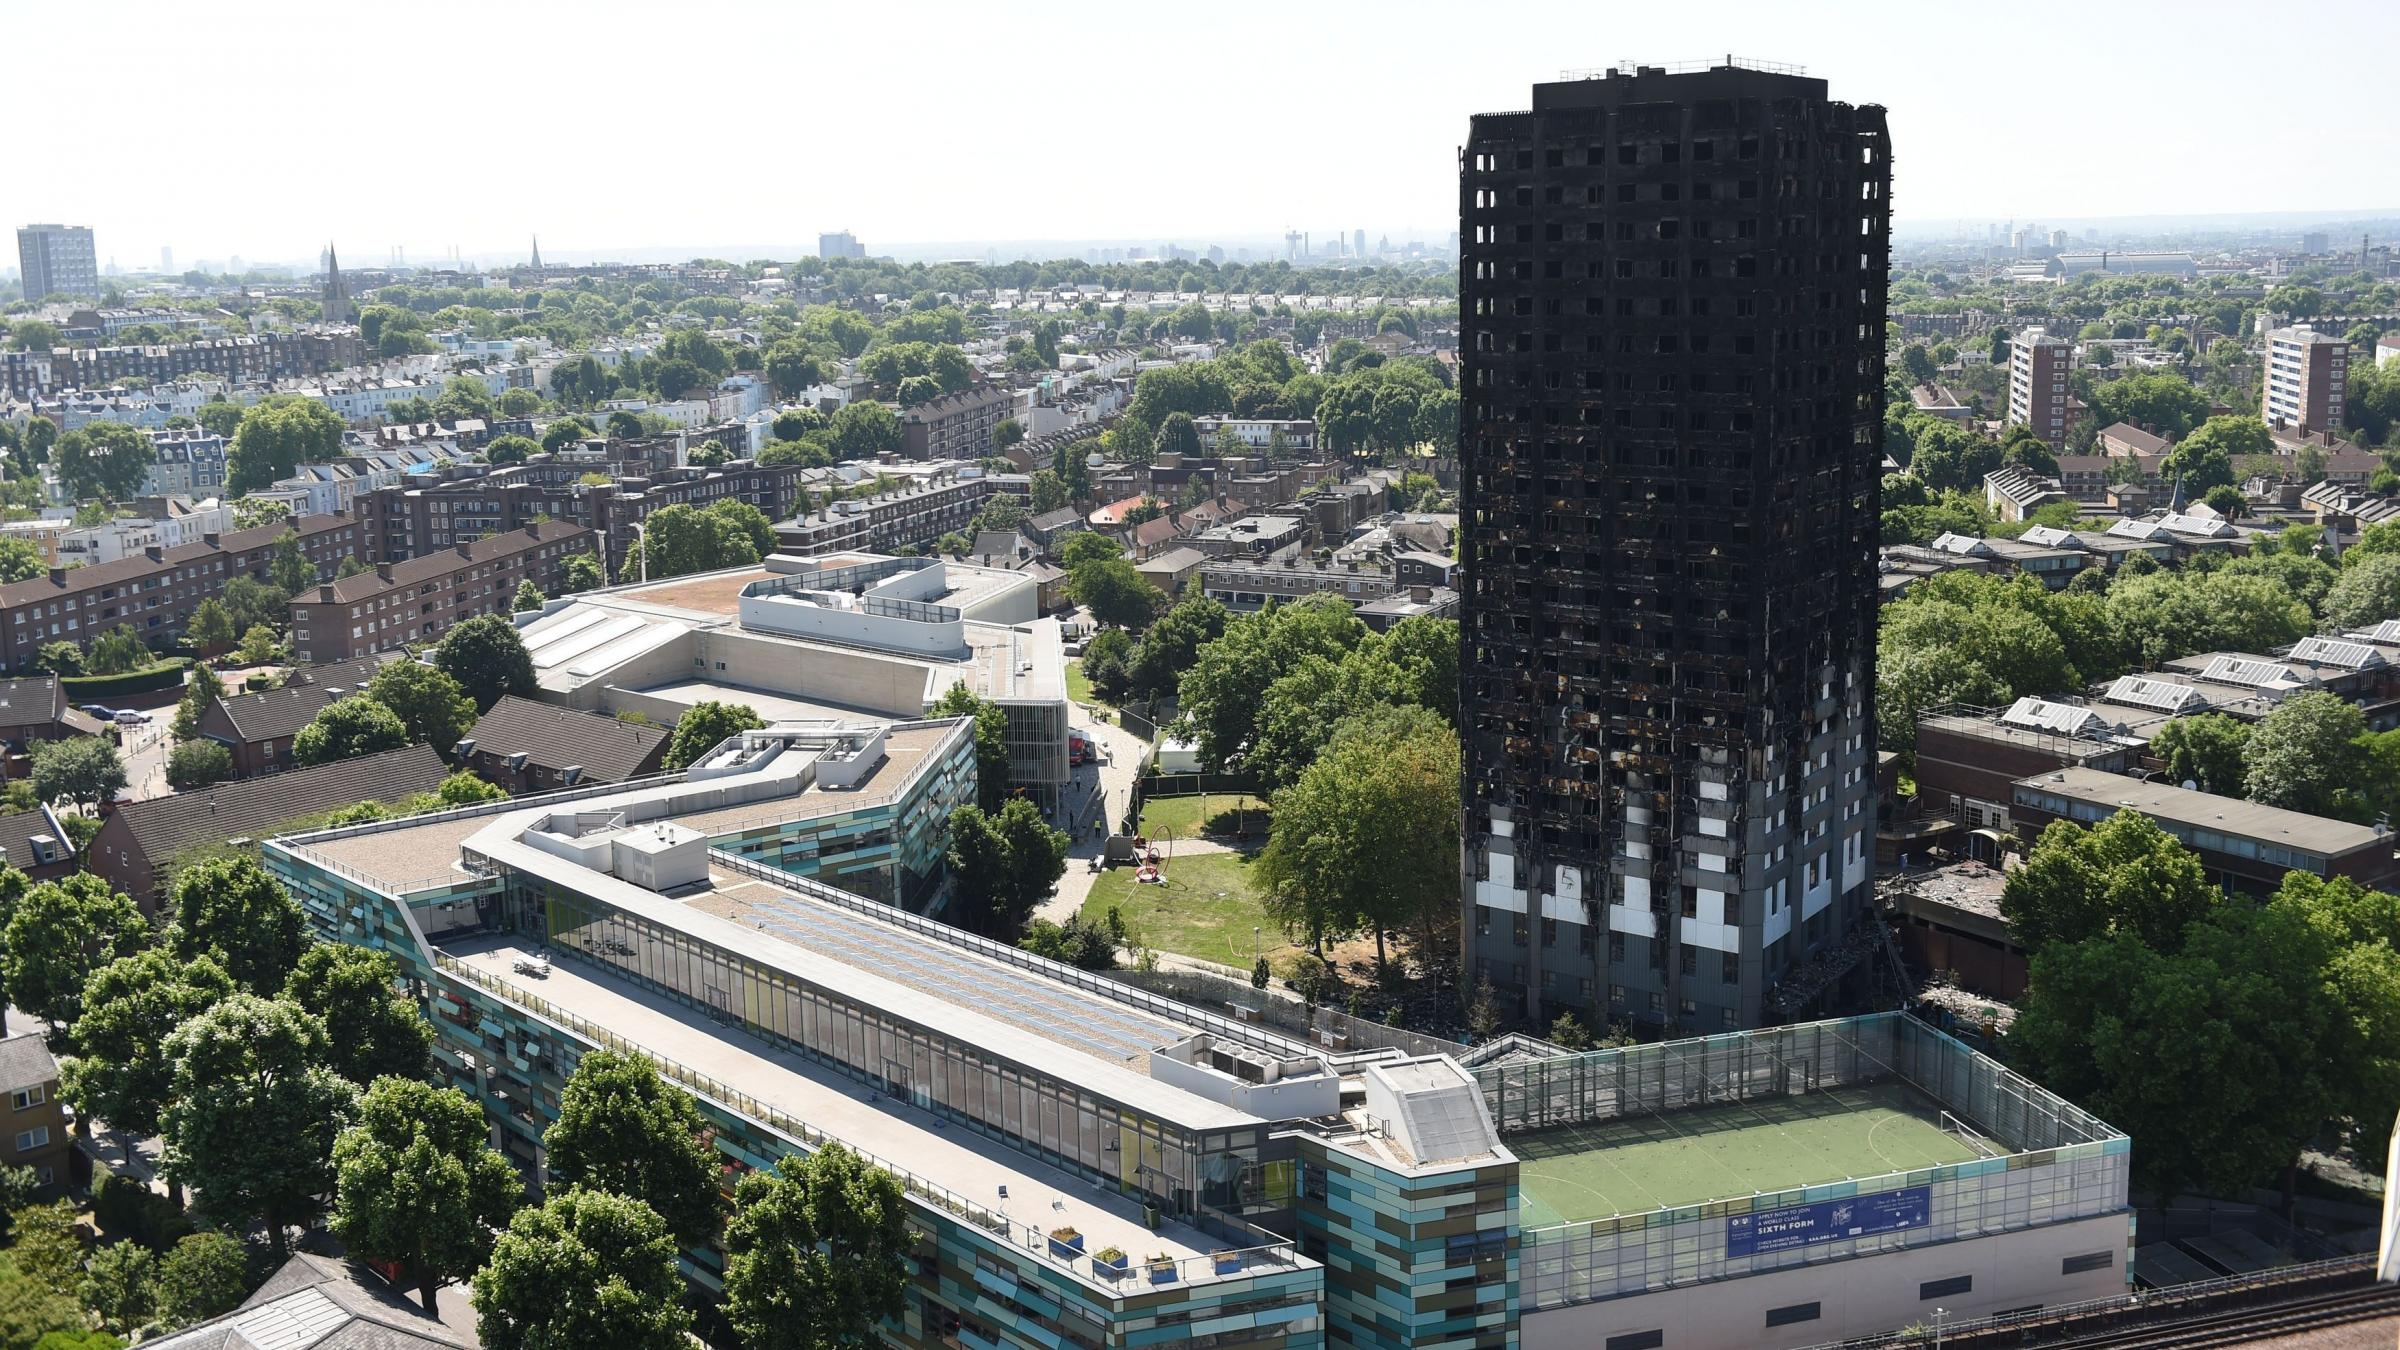 Cladding used in London's Grenfell Tower is 'banned in Britain'